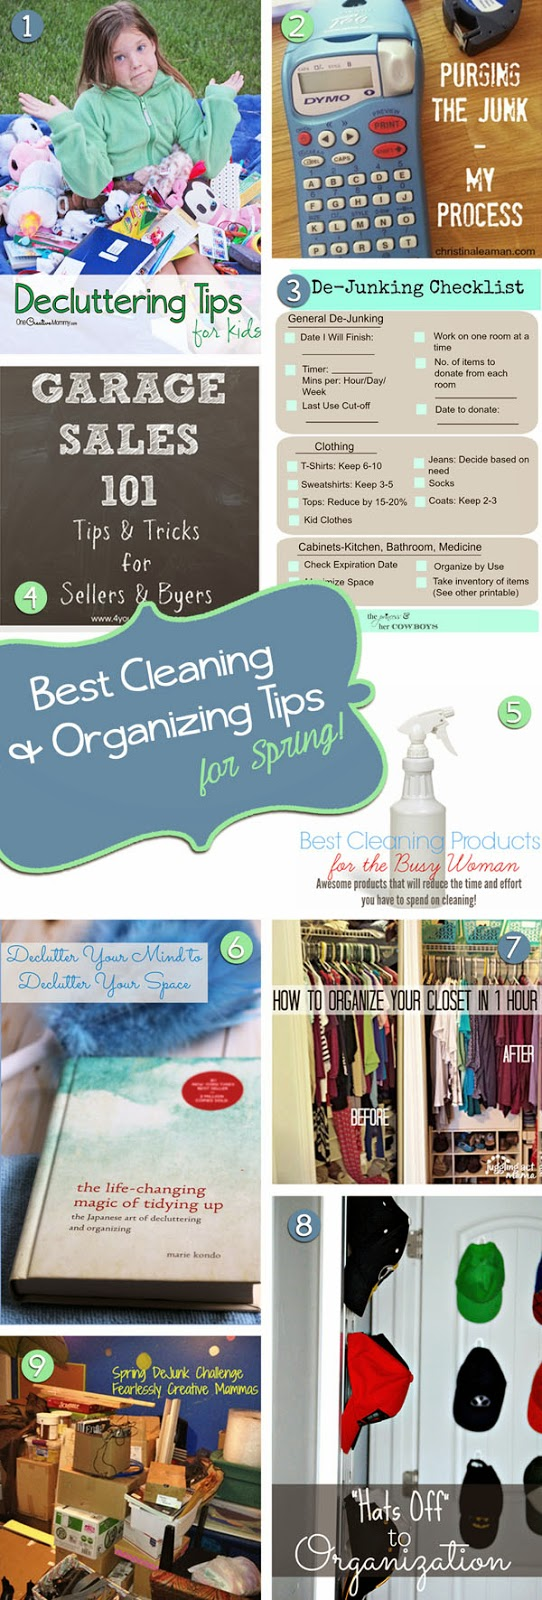 10 of the Best Cleaning & Organizing Tips for Spring #SpringDeJunkChallenge